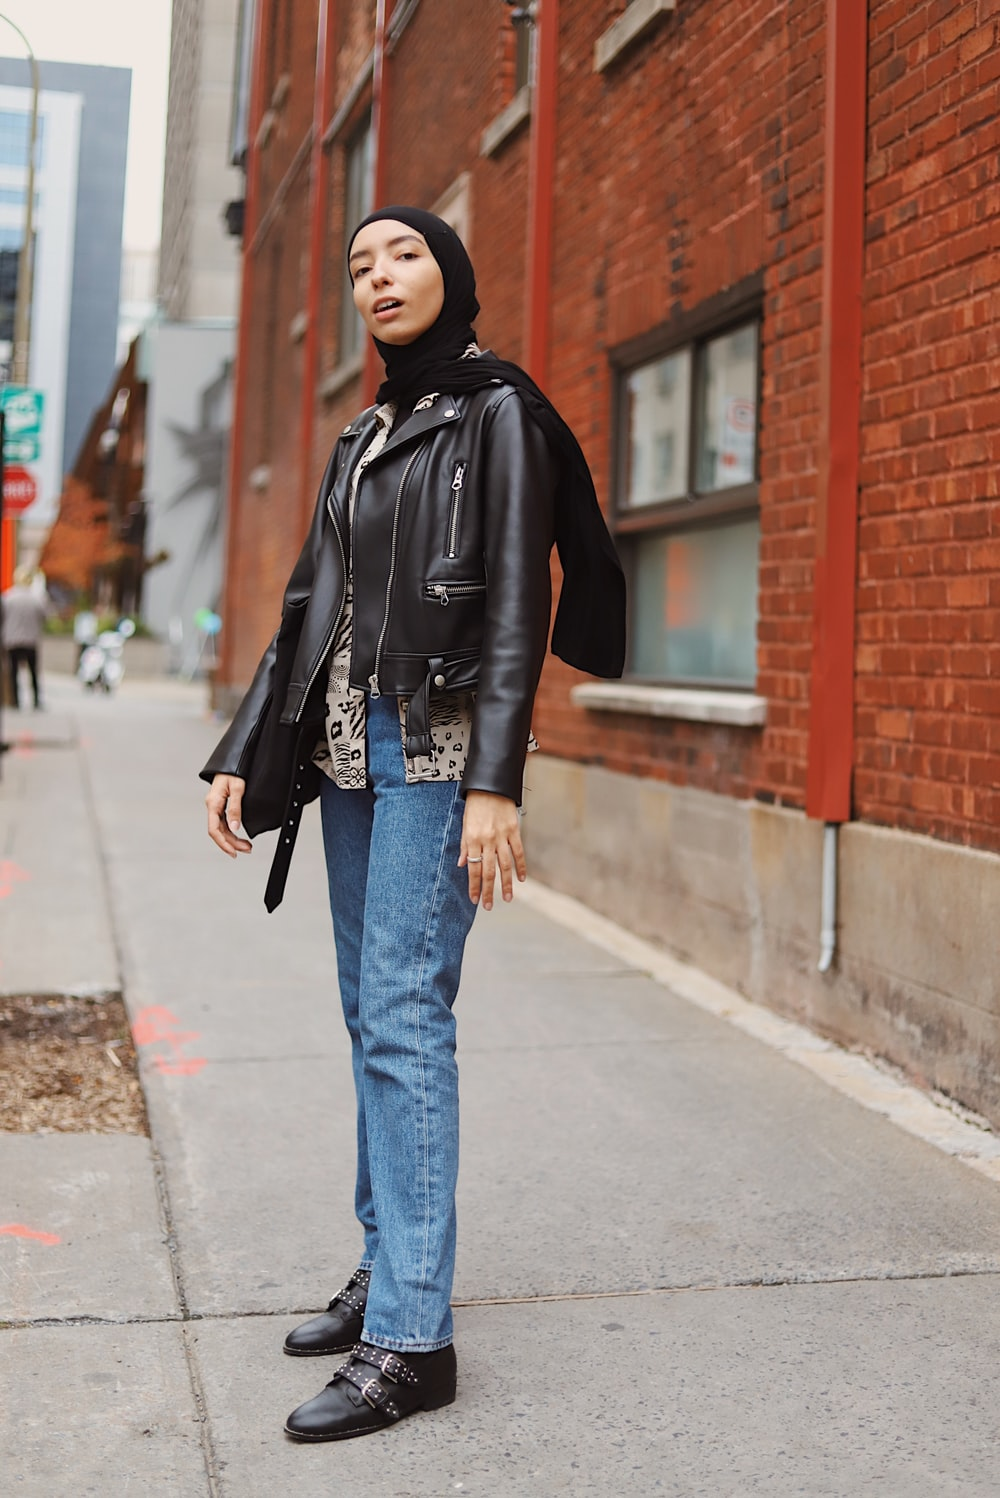 woman in black leather jacket and blue denim jeans standing on sidewalk during daytime